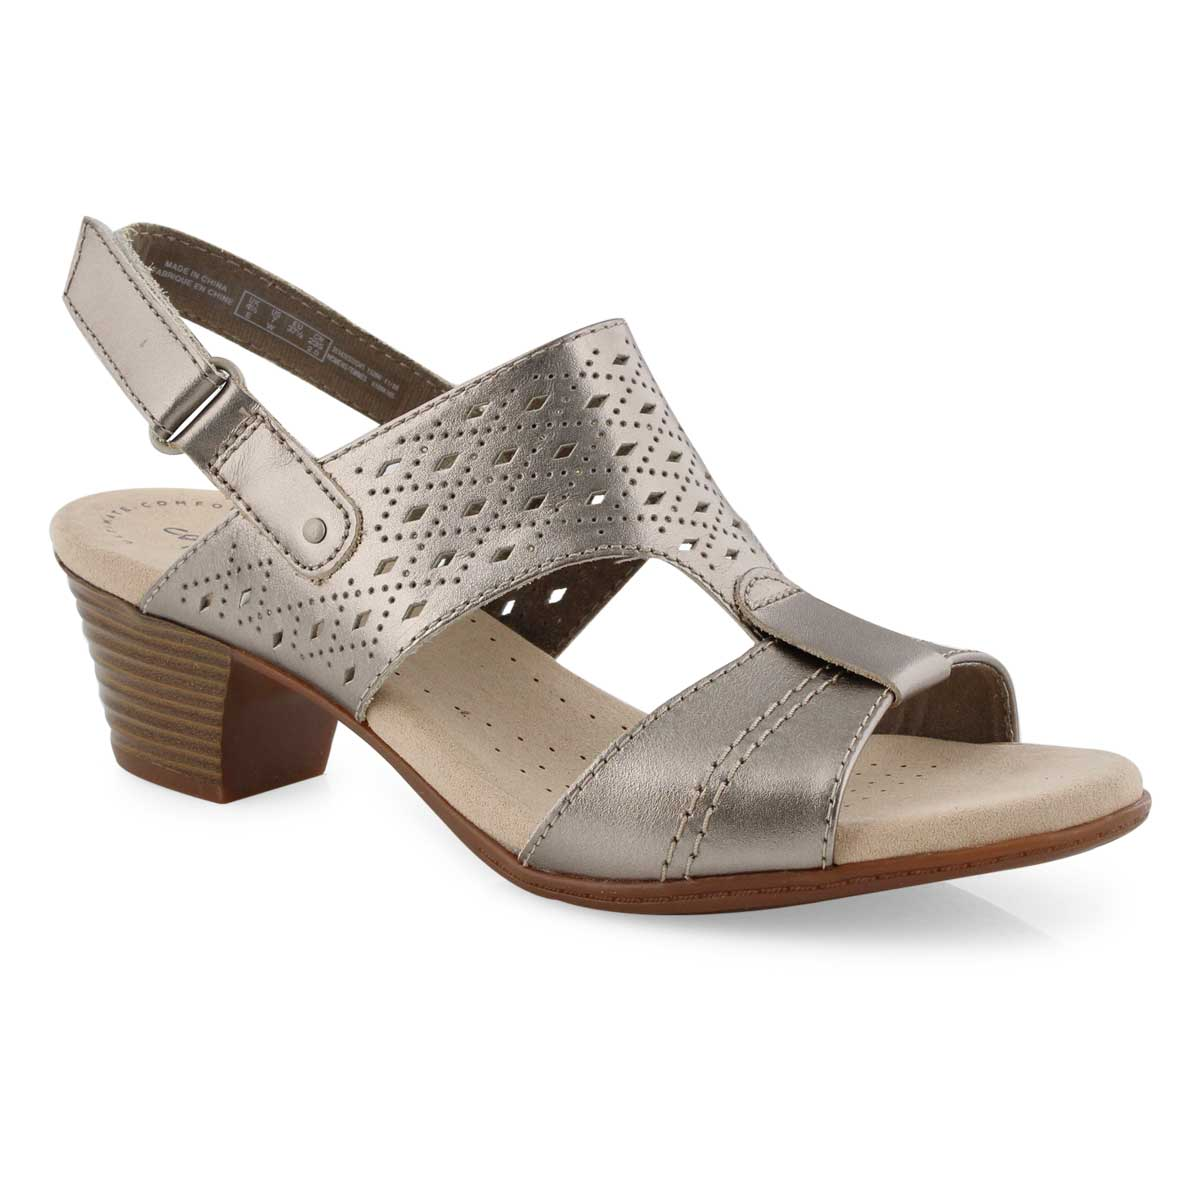 Lds Valarie Mindi pwtr dress sandal-wide